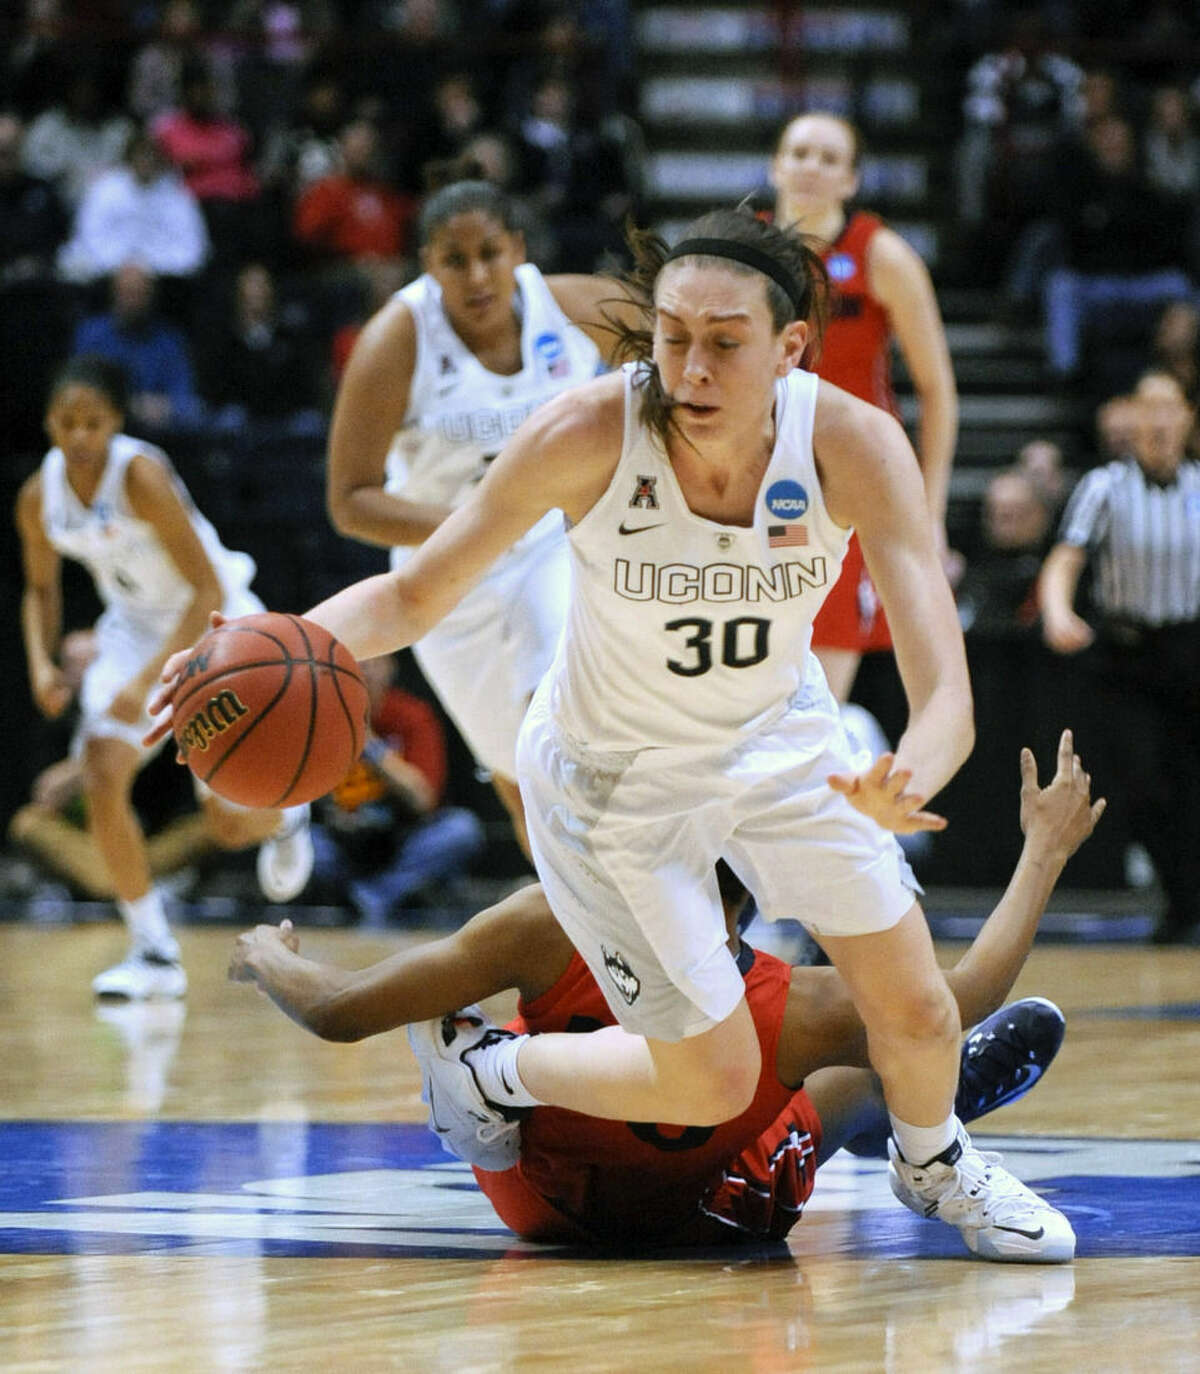 Connecticut forward Breanna Stewart (30) gets tripped by Dayton center Saicha Grant-Allen during the second half of a regional final game in the NCAA women's college basketball tournament on Monday, March 30, 2015, in Albany, N.Y. UConn won 91-70. (AP Photo/Tim Roske)